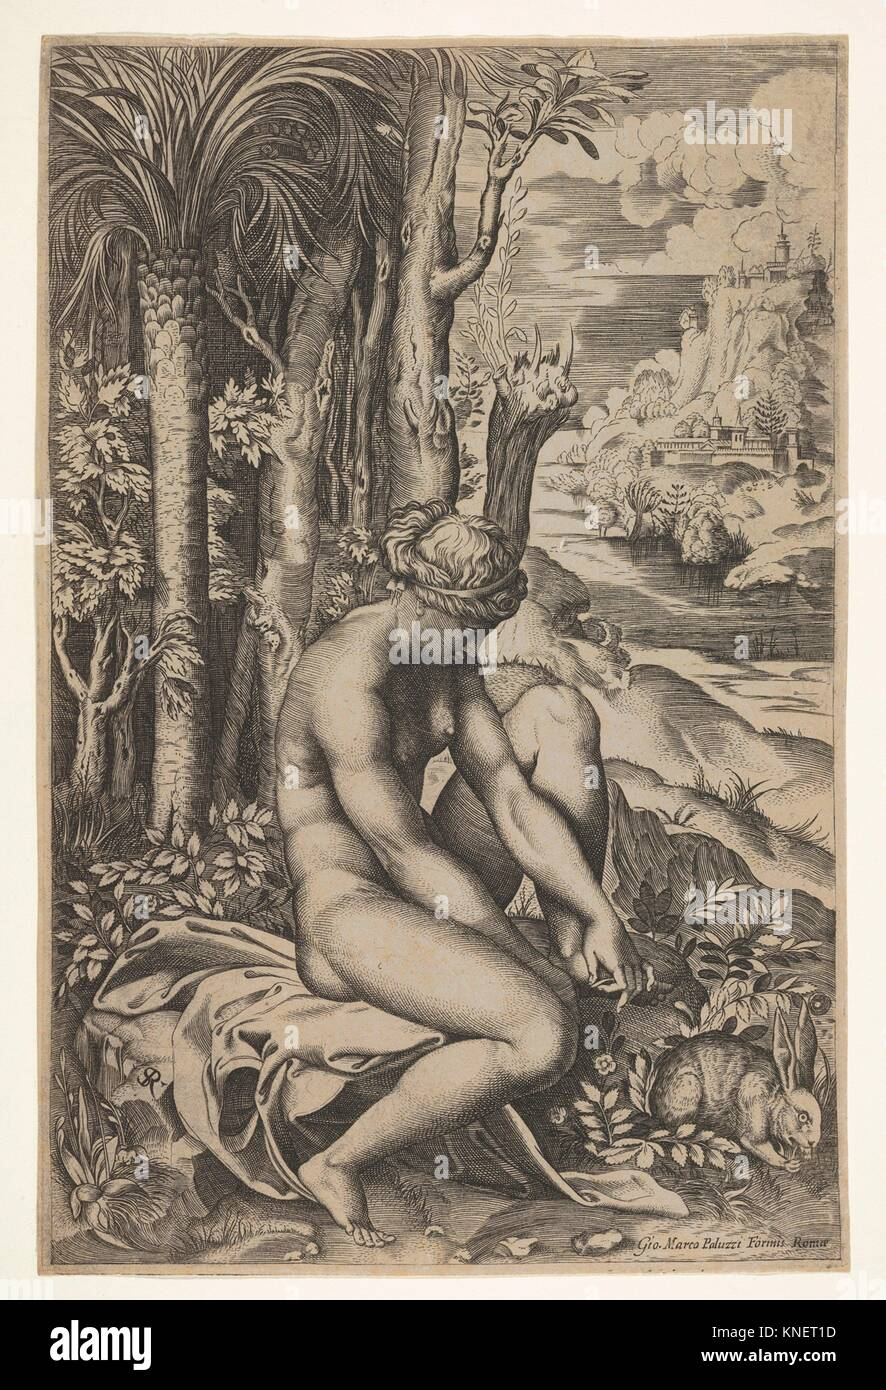 Venus removing a thorn from her left foot while seated on a cloth beside trees and foliage, a hare eating grass Stock Photo